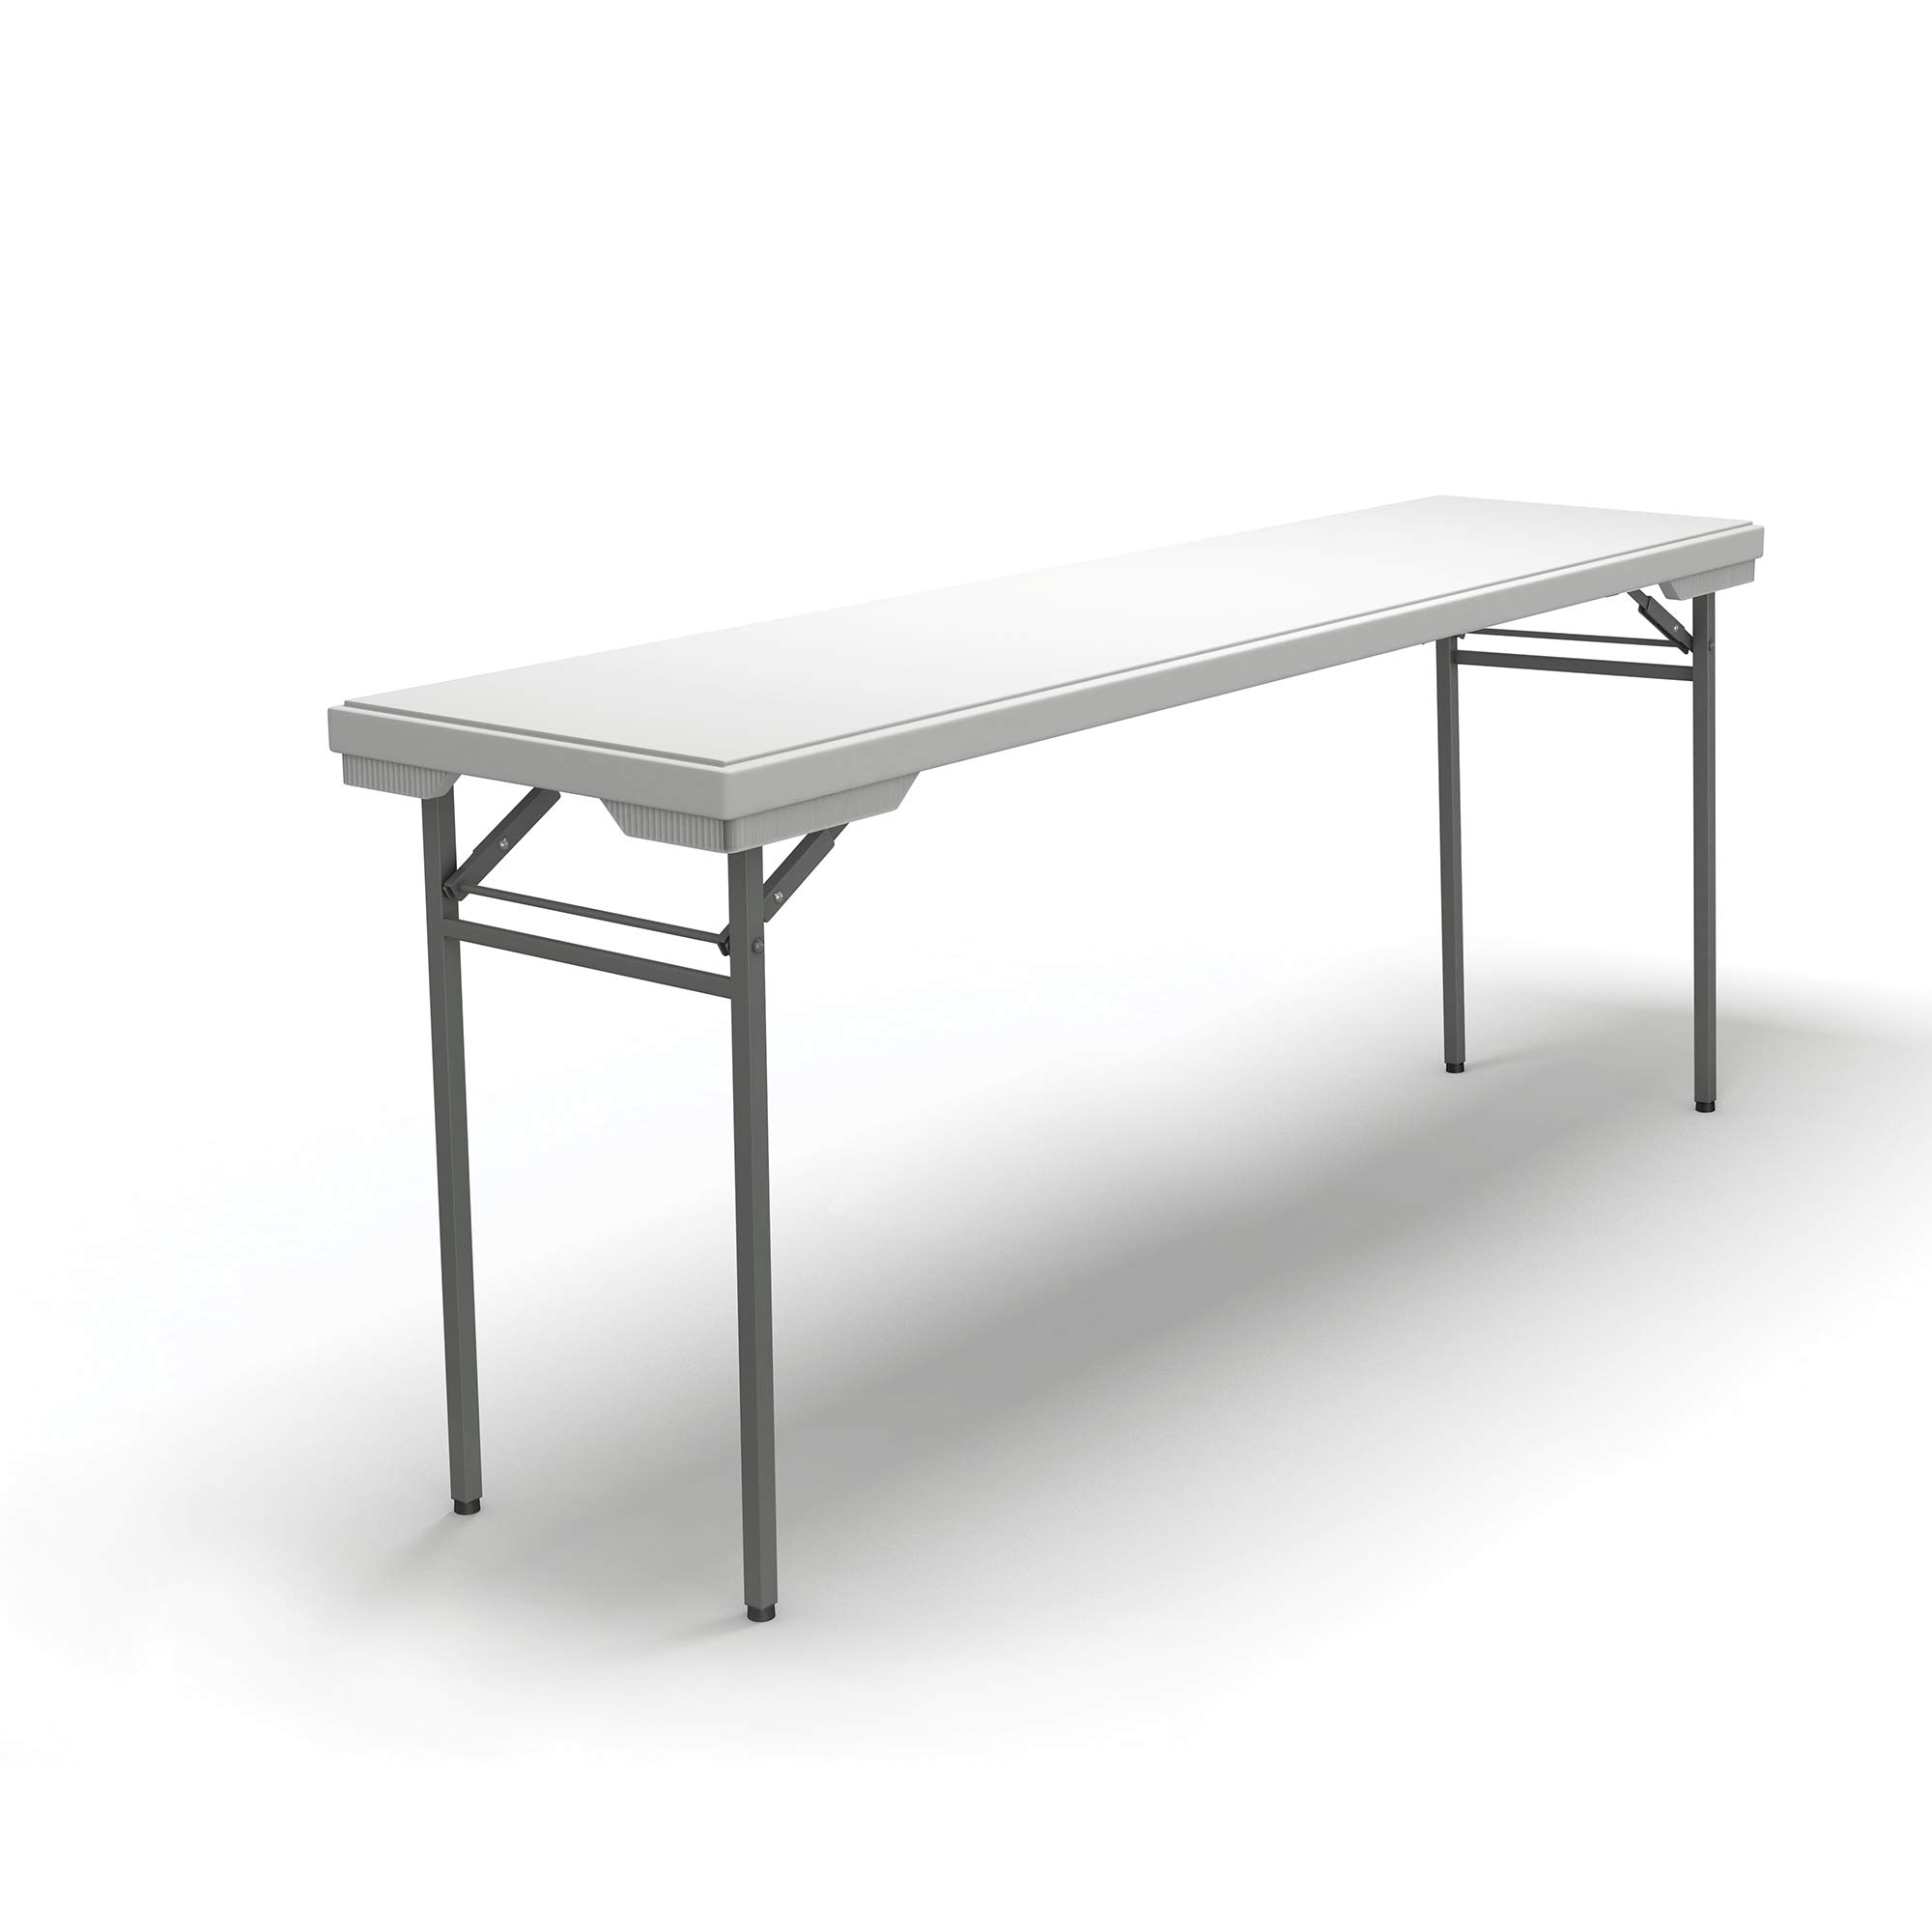 Mayline 721872DGWT Event Series Rectangle Folding Table 72W x 18D, White Top/Dark Gray Base by Mayline Group